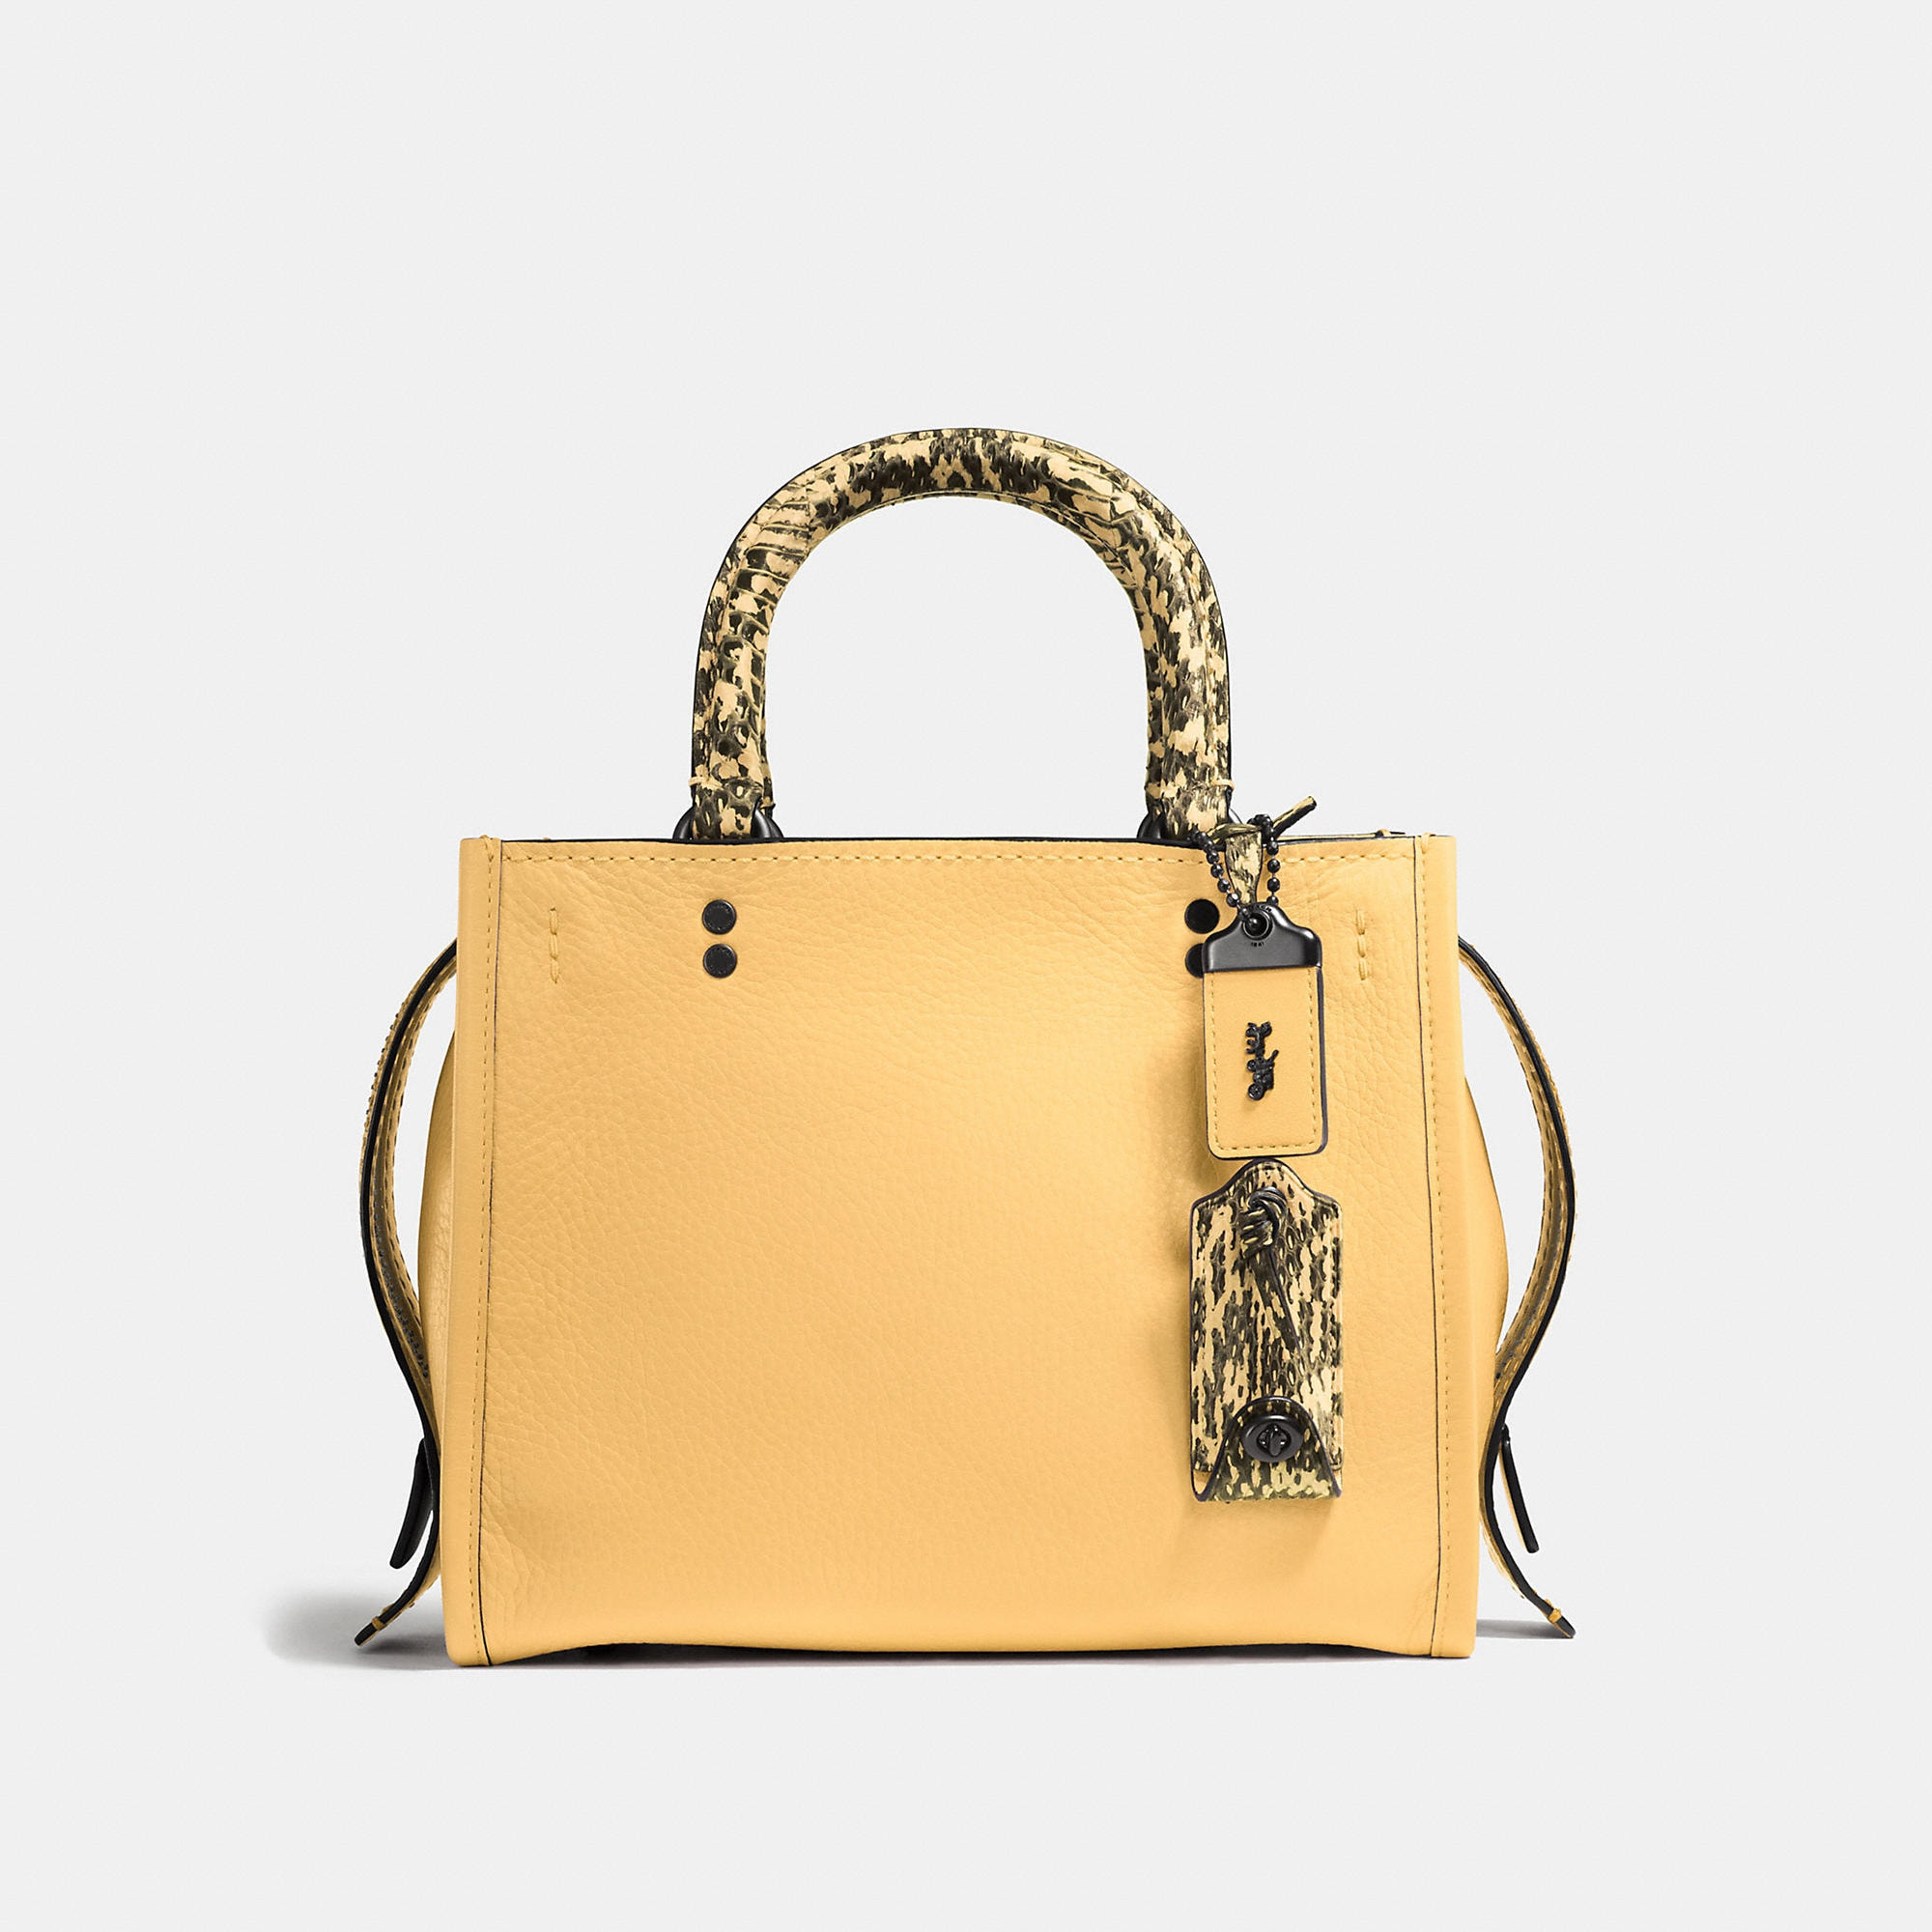 Coach Rogue 25 In Glovetanned Pebble Leather With Colorblock Snake